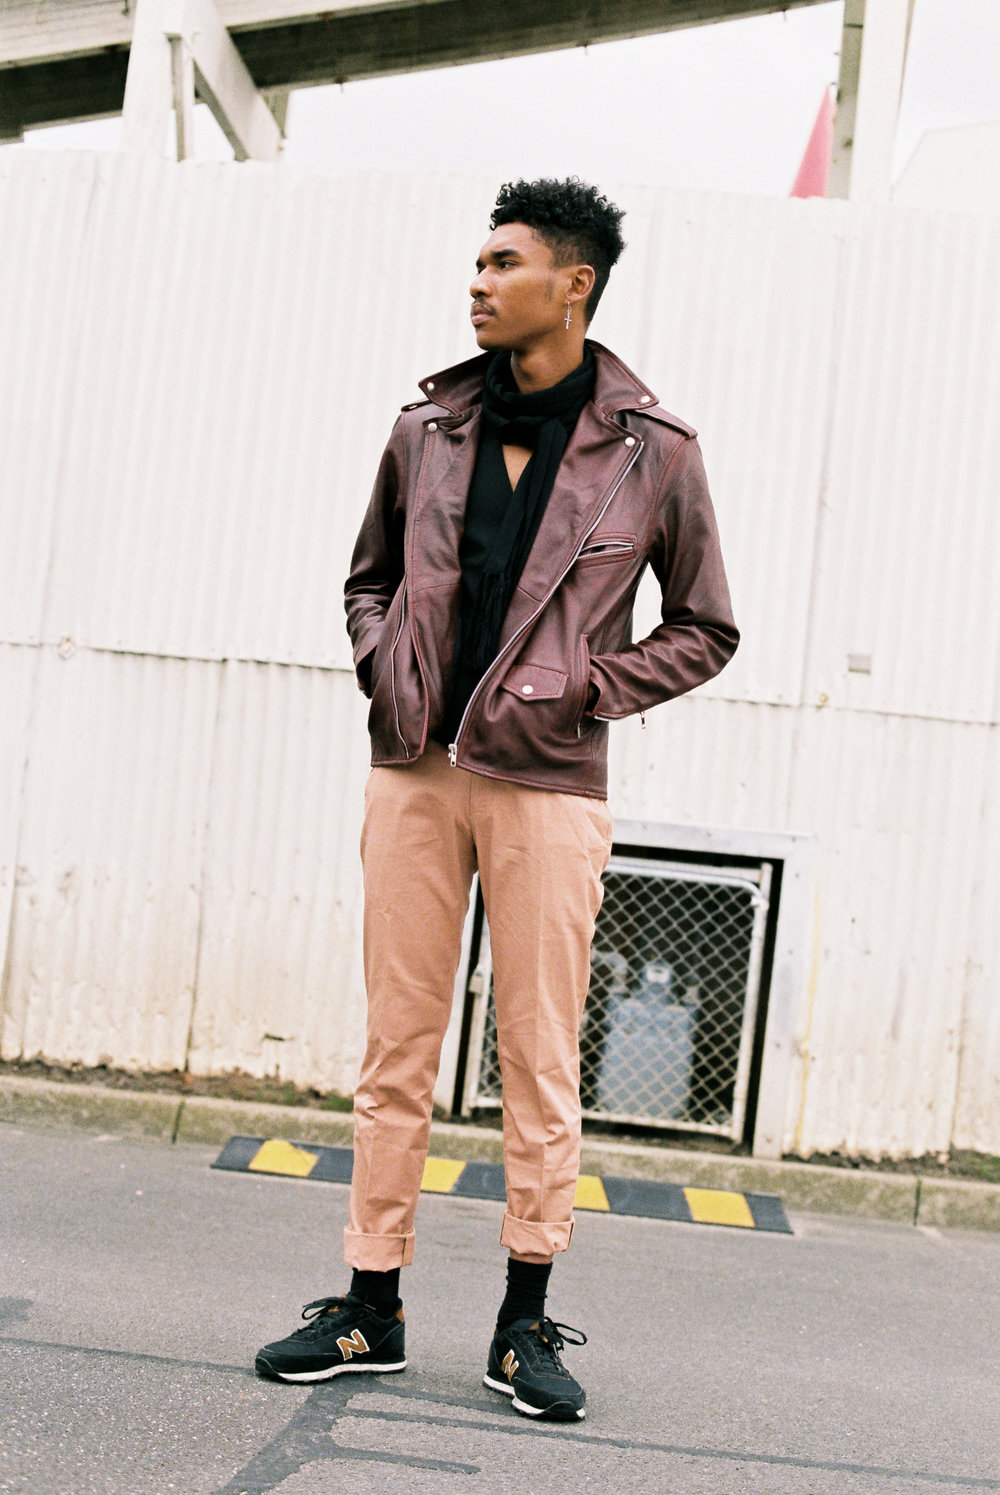 Chai wears: Leather Oxblood Jacket @ viparo   Cotton Chino @ topmanau  Shoes @ newbalanceaustralia  Waist Coat and Scarf @ jacklondon_official